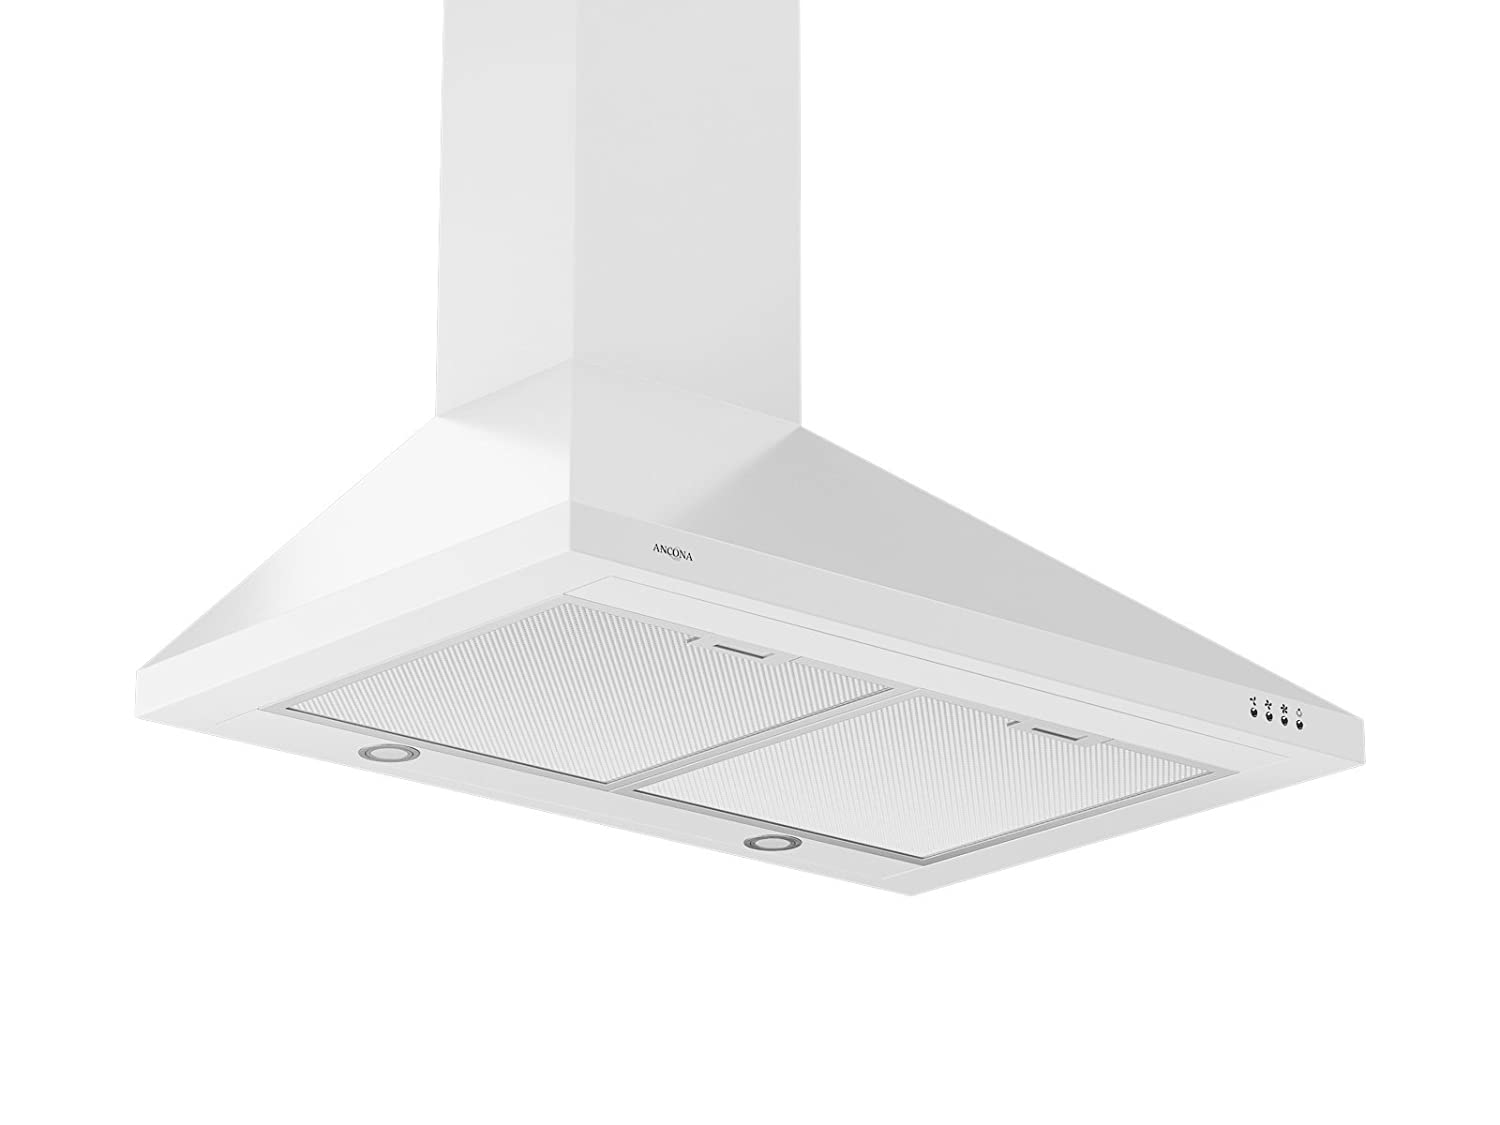 Ancona WPPW430 Wall-Mounted Classic Pyramid Style Convertible Range Hood, 30-Inch, White